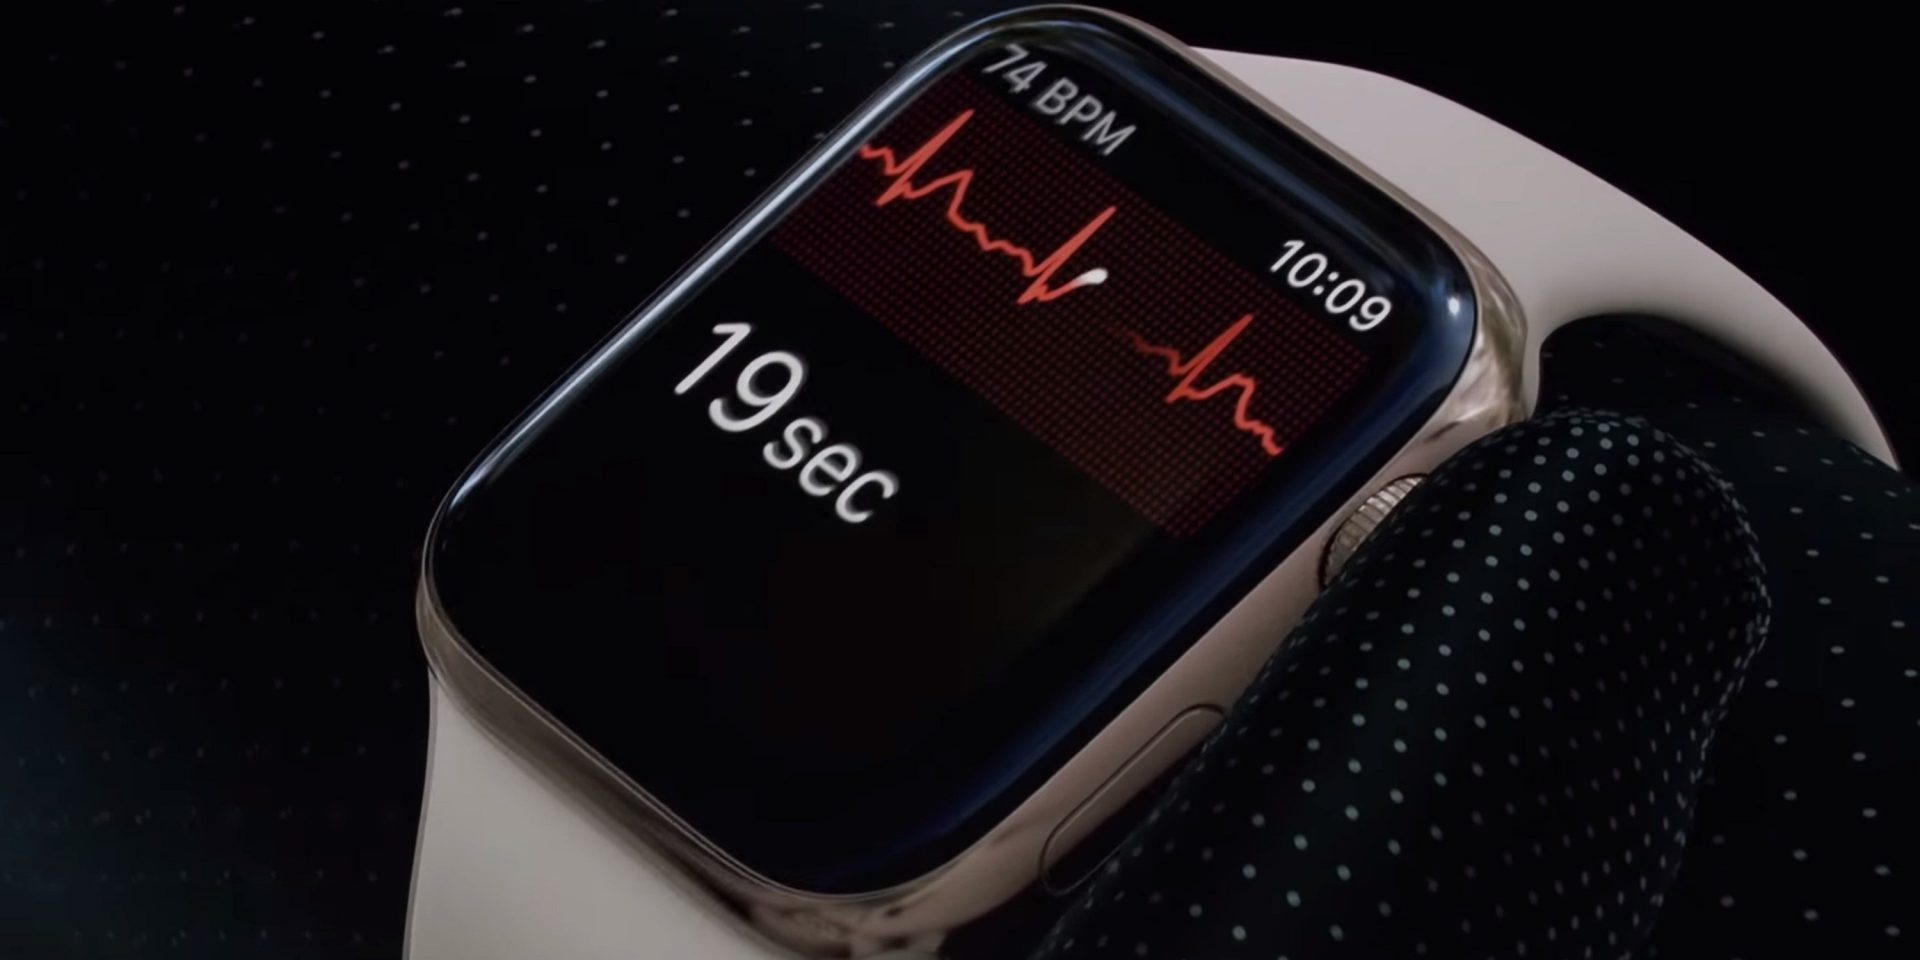 Apple: con WatchOS 5.2 arriva il supporto all'app ECG in Italia